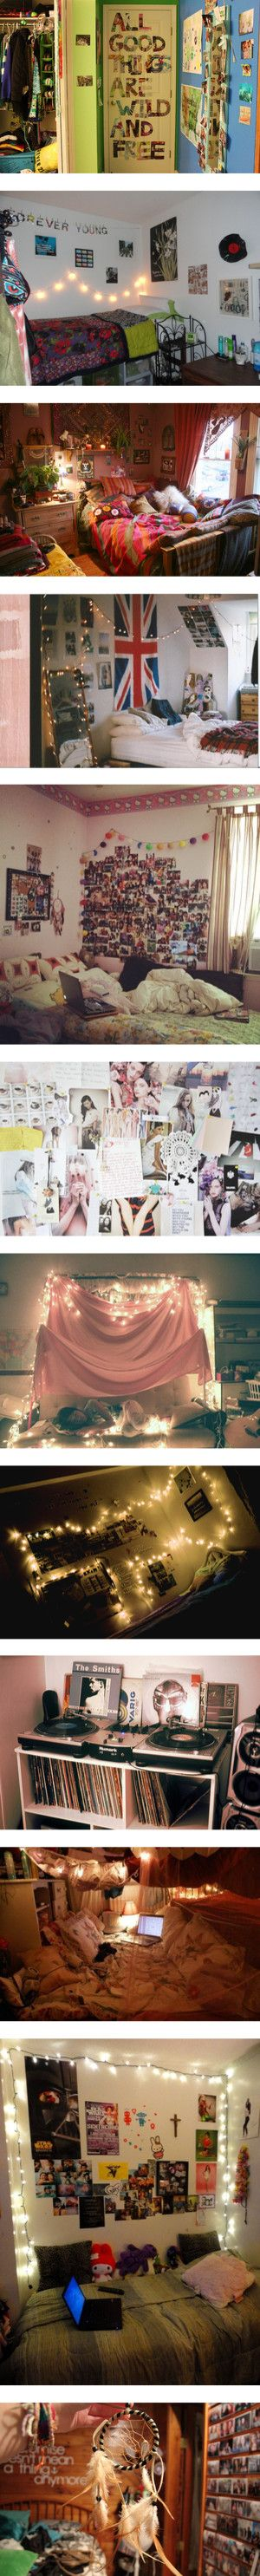 """""""indie/hipster/alternative bedroom inspiration"""" by the-hipster-tip-sisters ❤ liked on Polyvore"""